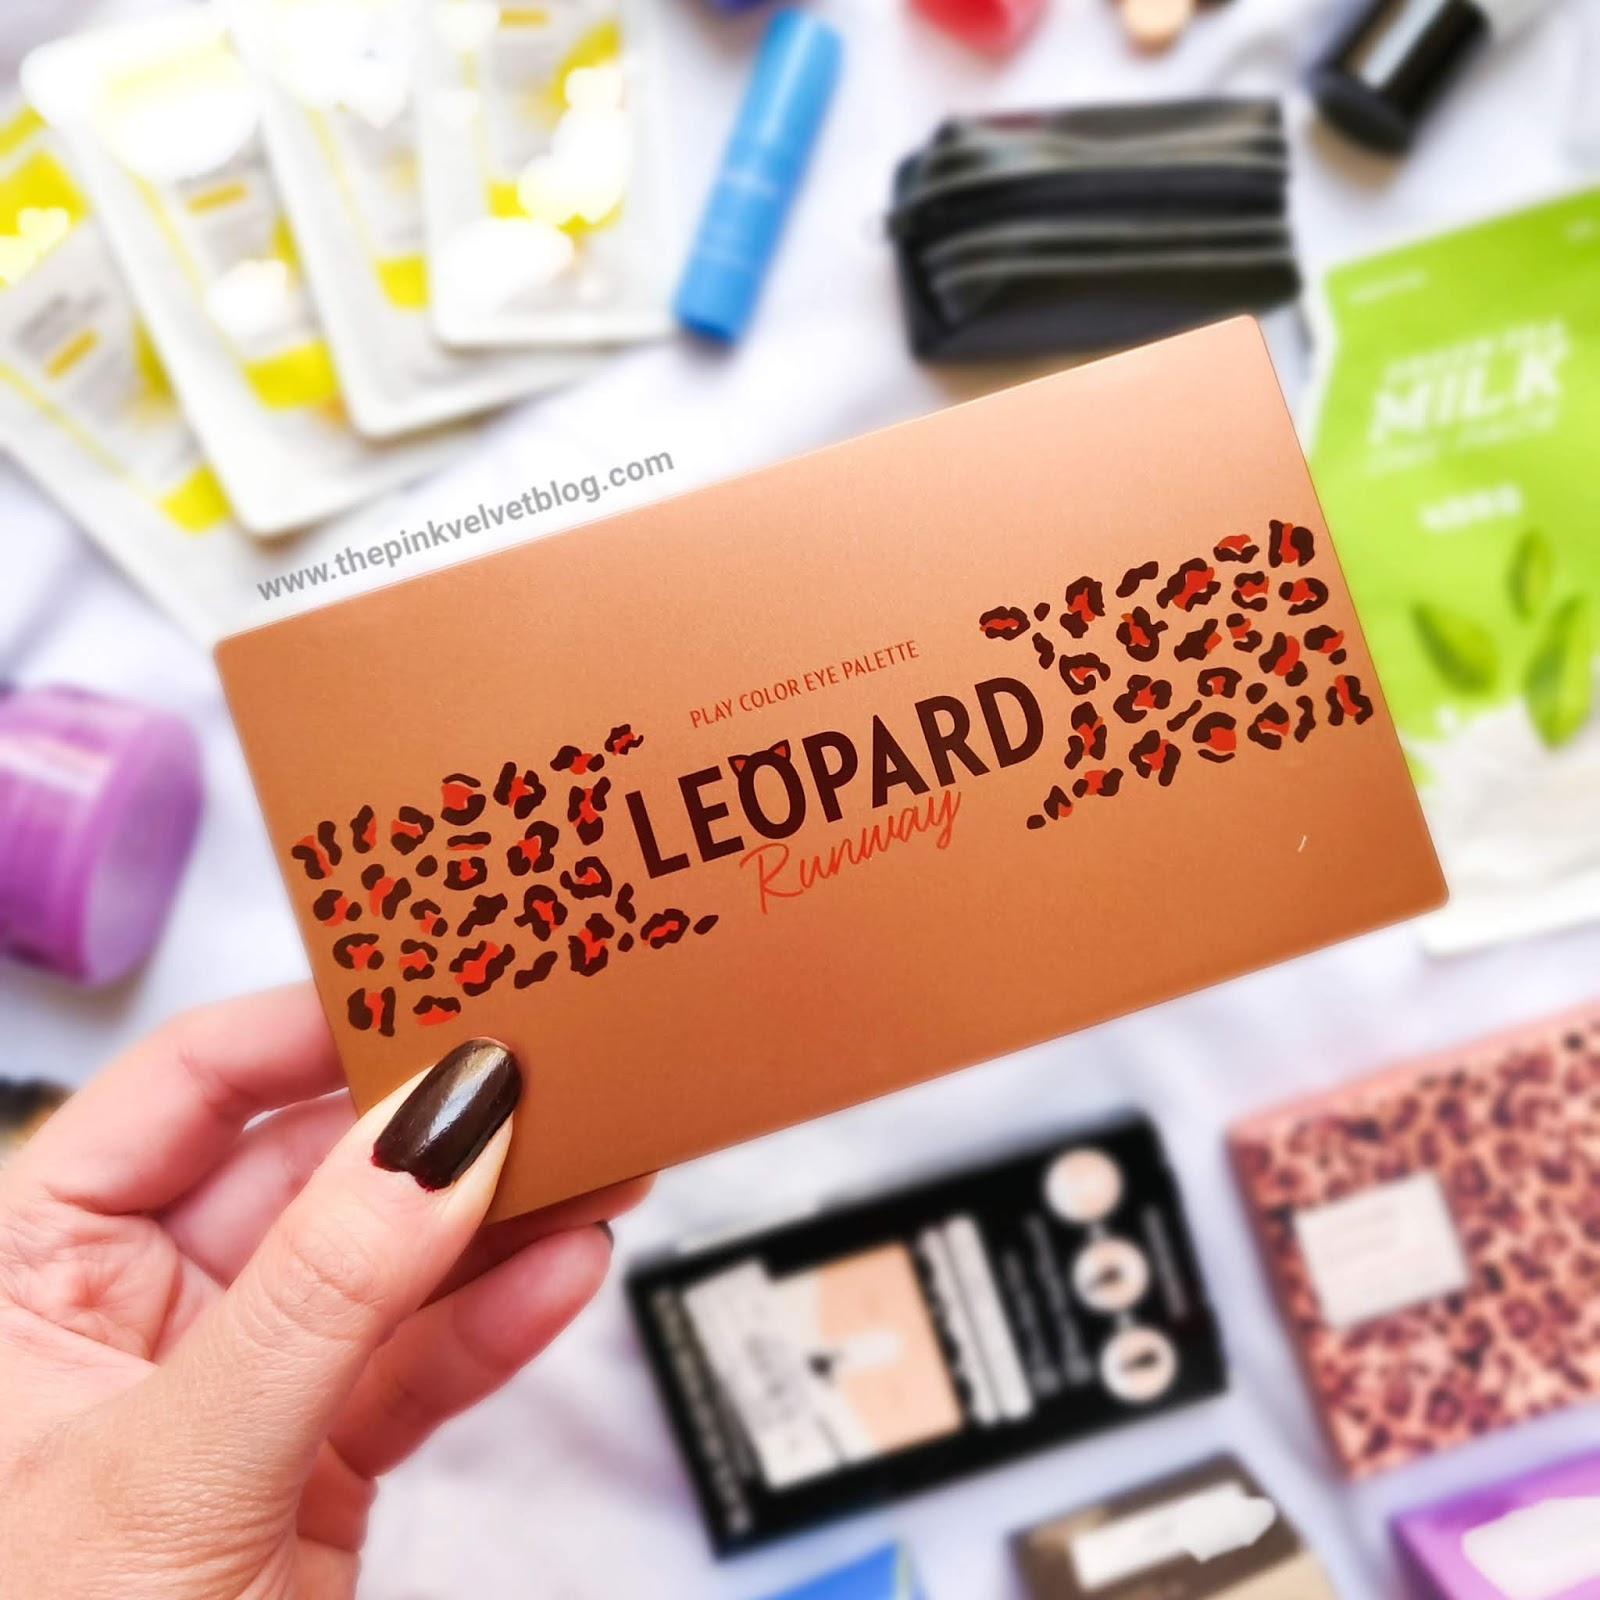 YesStyle Shopping Haul and Experience | YesStyle Shopping Haul and Experience | Korean Beauty Cosmetics from YesStyle - Etude House Leopard